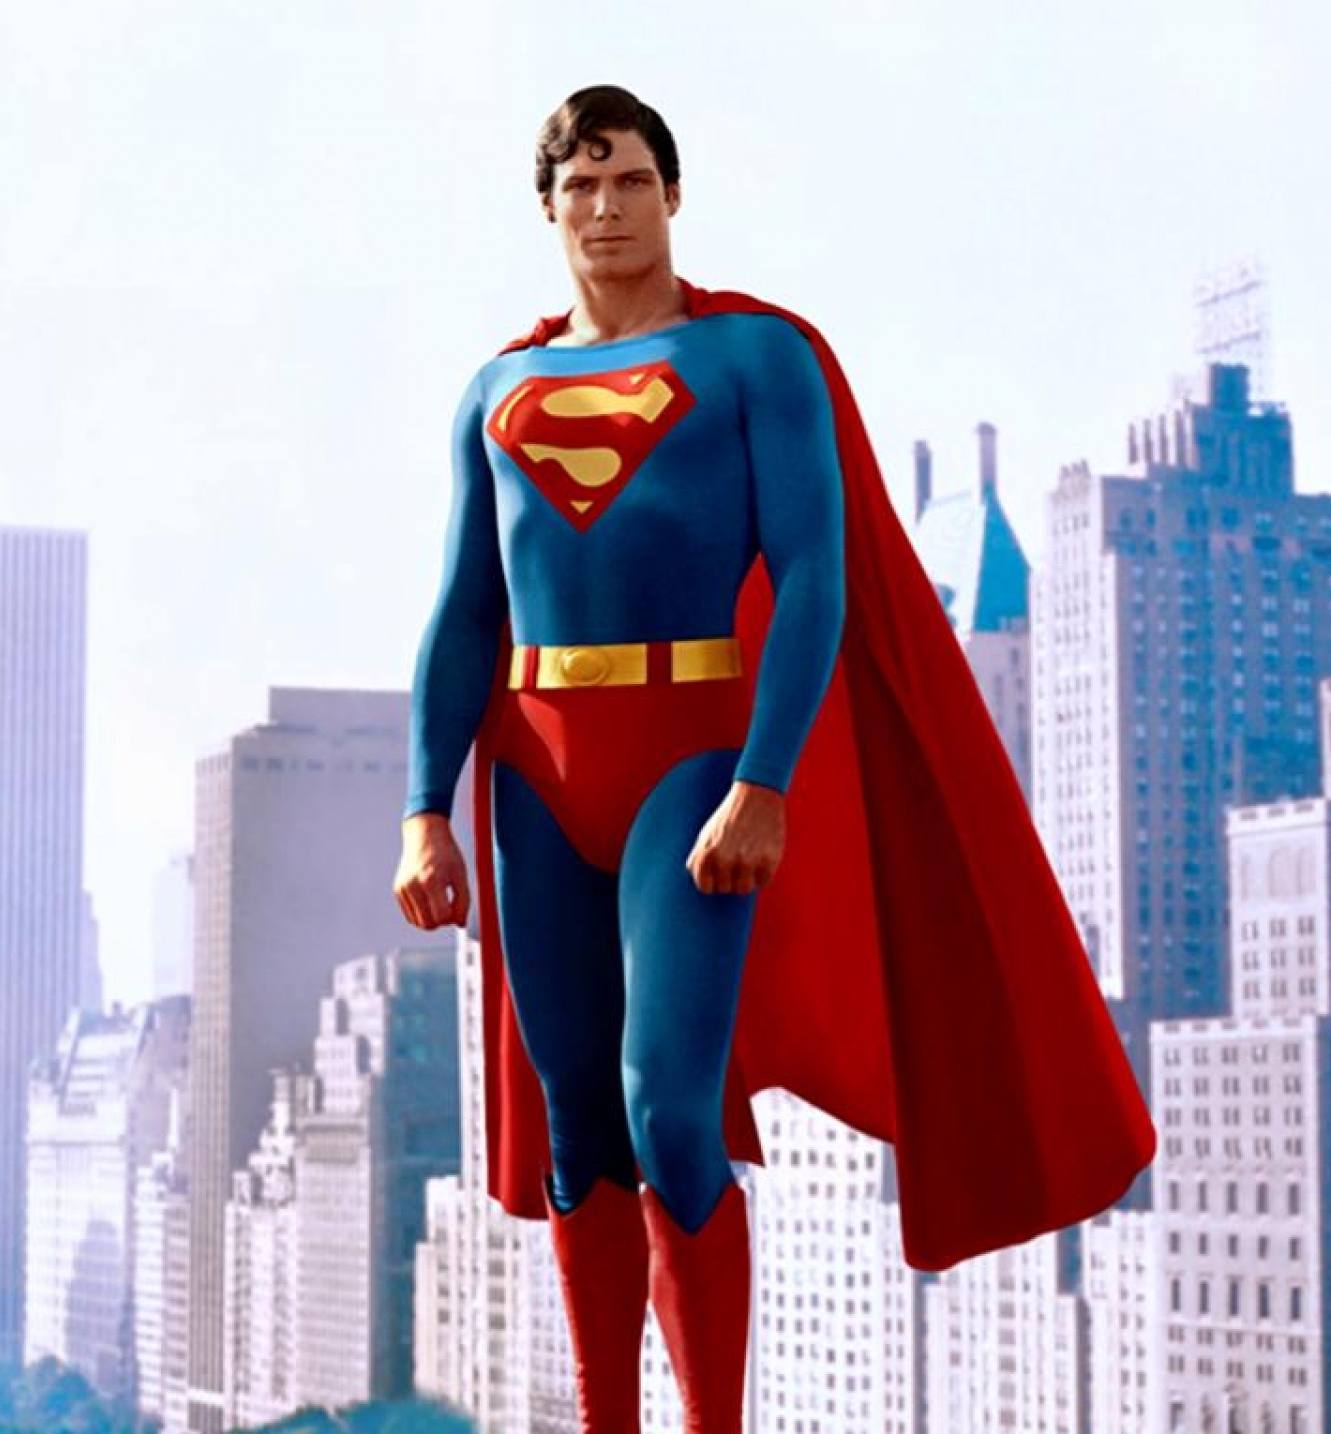 Superman 1978 Christopher Reeve 24 Things You Probably Didn't Know About Christopher Reeve's Superman Films